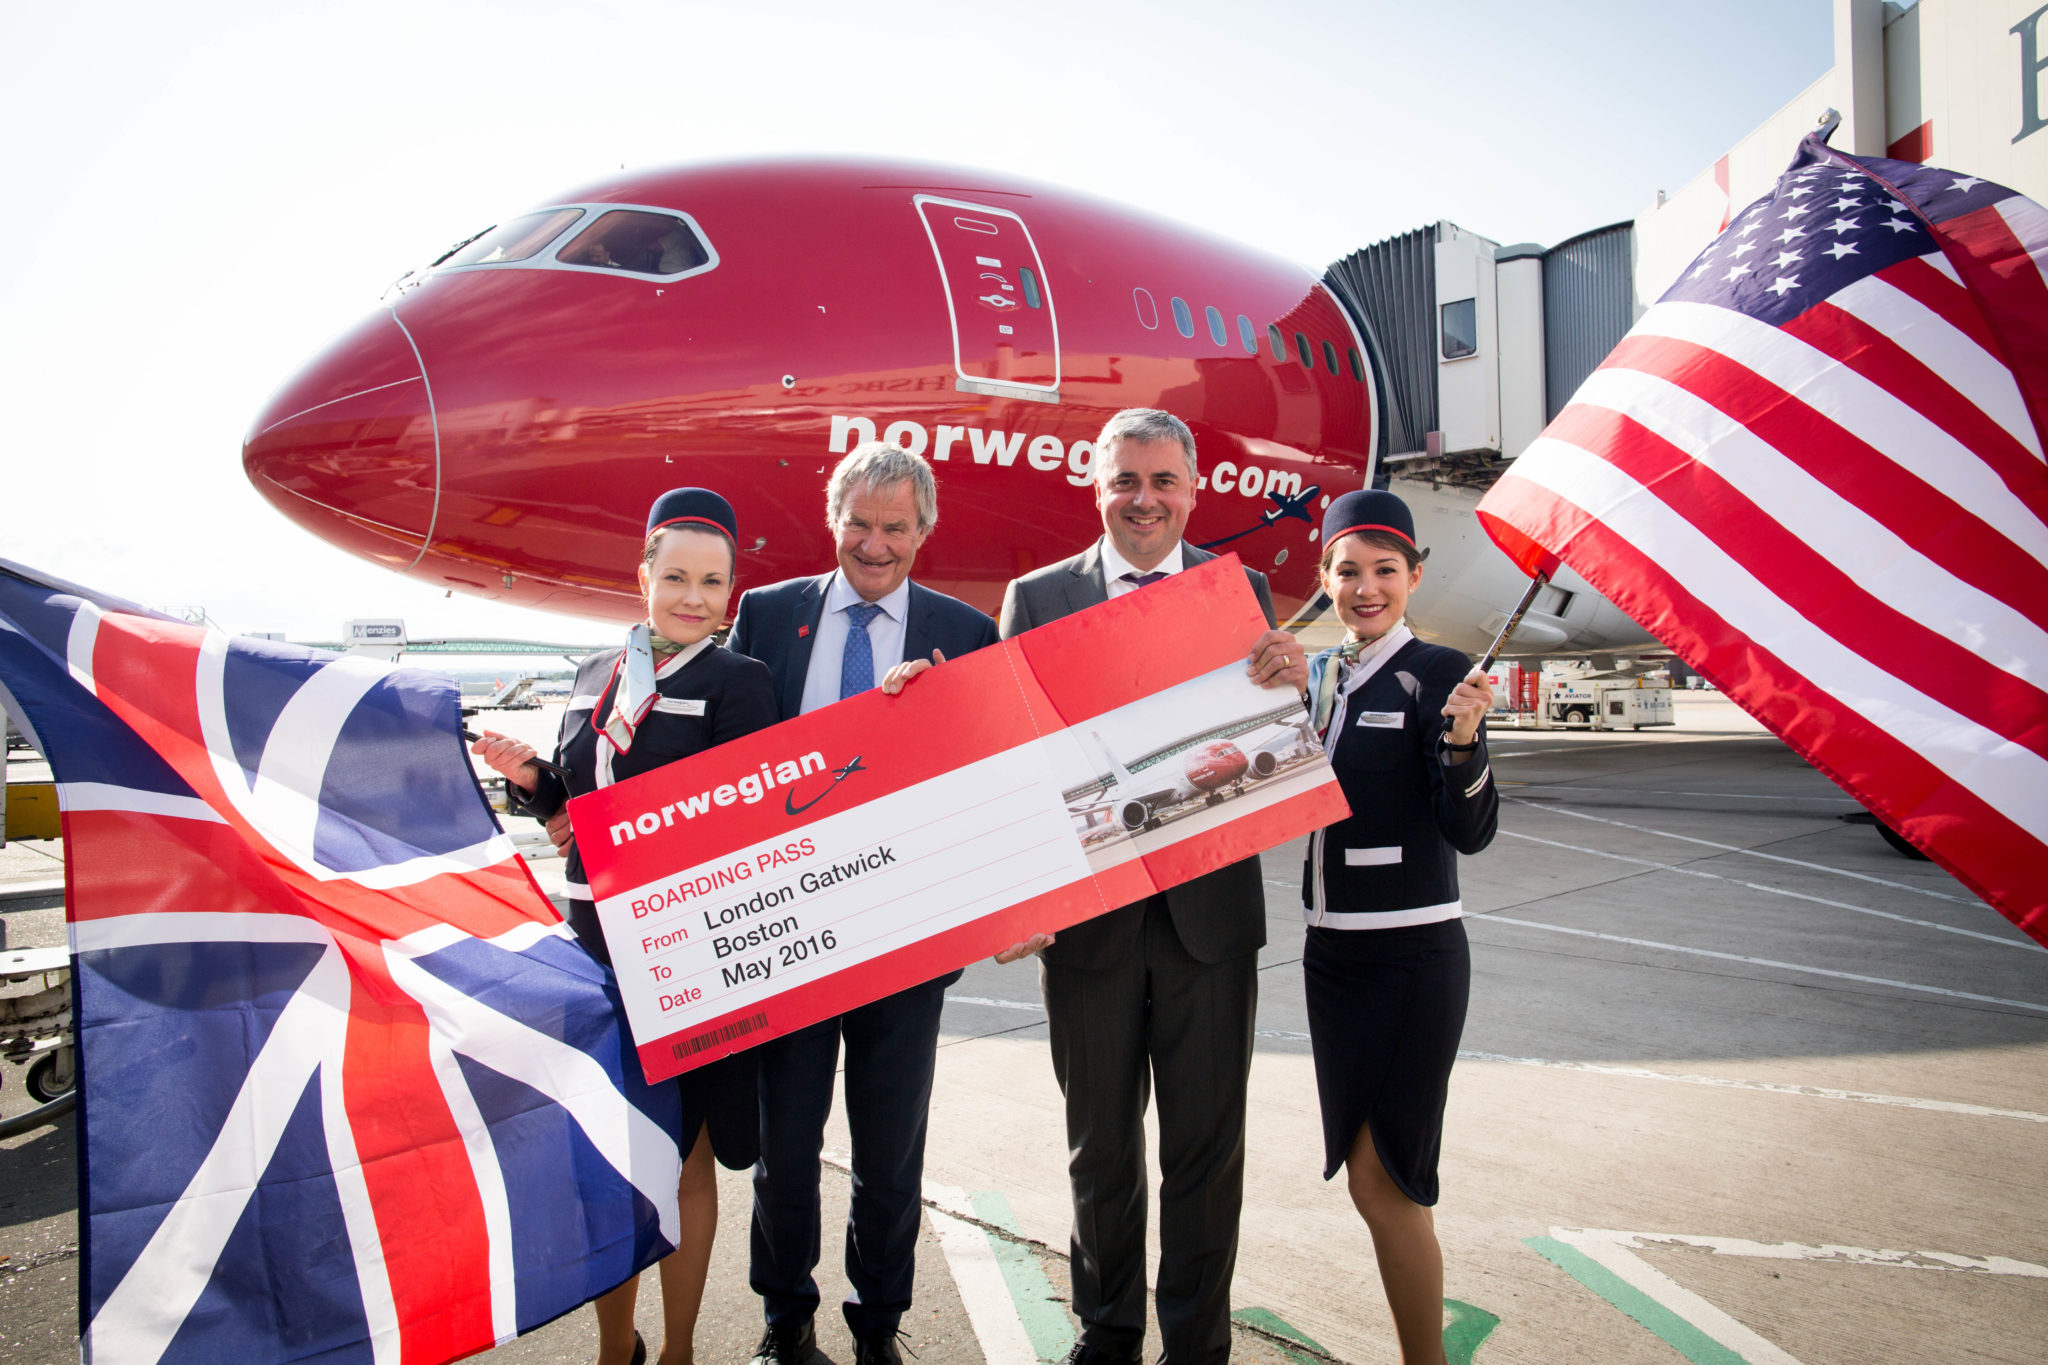 July 2015: Norwegian CEO Bjorn Kjos and Gatwick Airport Chief Executive Stewart Wingate announce new London to Boston route with the help of cabin crew Riikka Tikkanen and Olga Jimenez Image: Norwegian Air